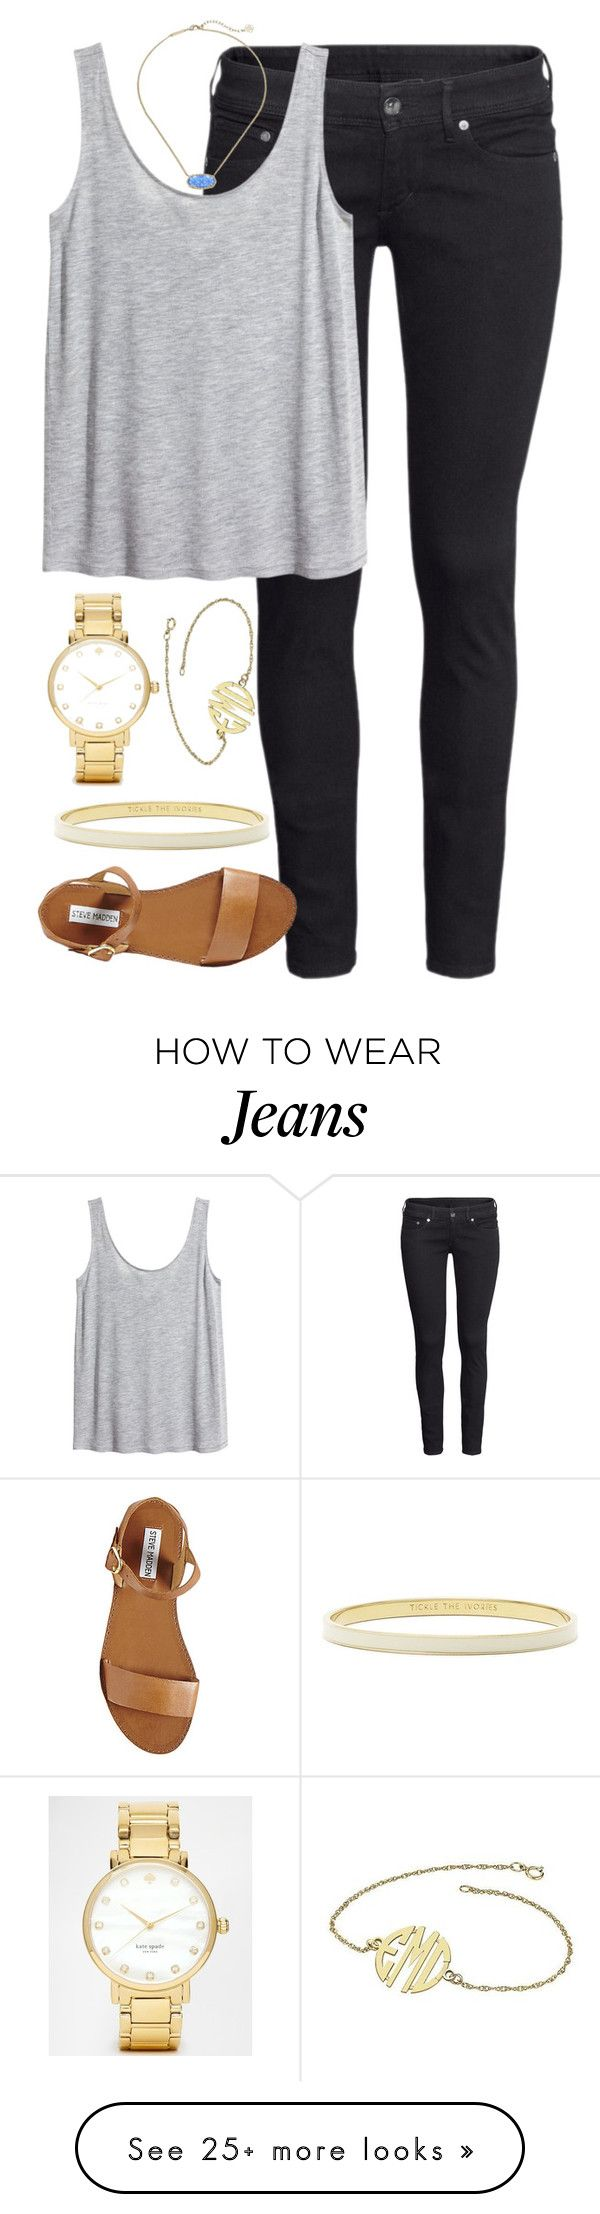 """""""jeans"""" by whitegirlsets on Polyvore featuring H&M, Steve Madden, Kate Spade and Kendra Scott"""